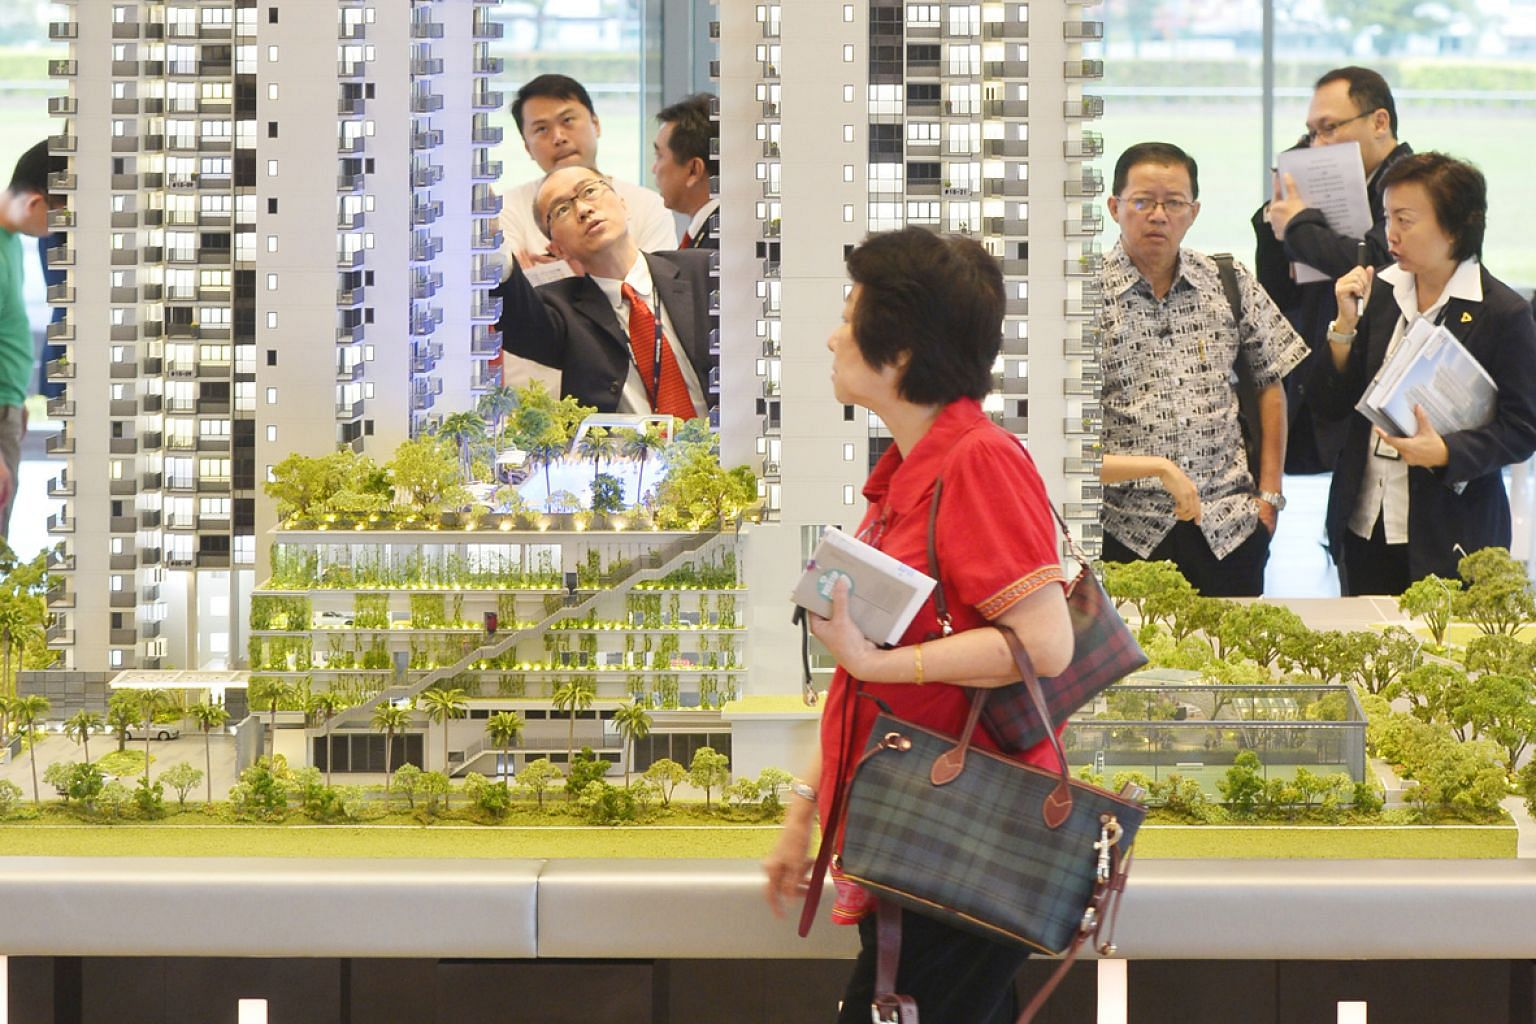 Going forward, analysts expect tax collection, in areas such as corporate income tax and stamp duties for property sales, to slow given the current economic slowdown. ST FILE PHOTO